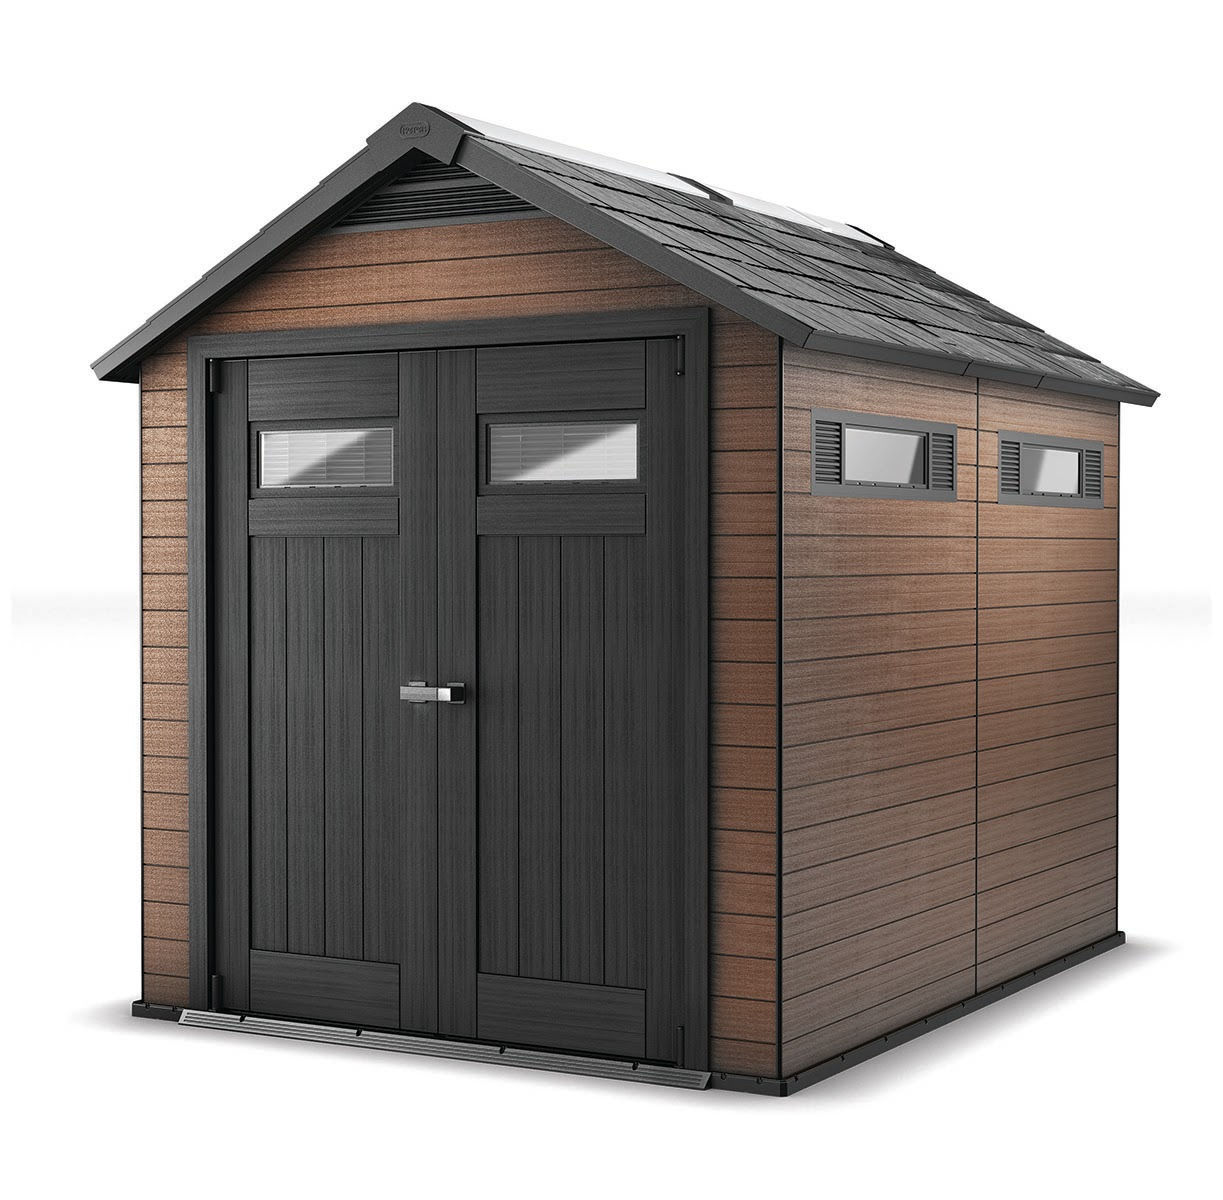 Keter Fusion 7.5 x 9 Outdoor Wood Plastic Composite Large Storage Shed, Mahogany